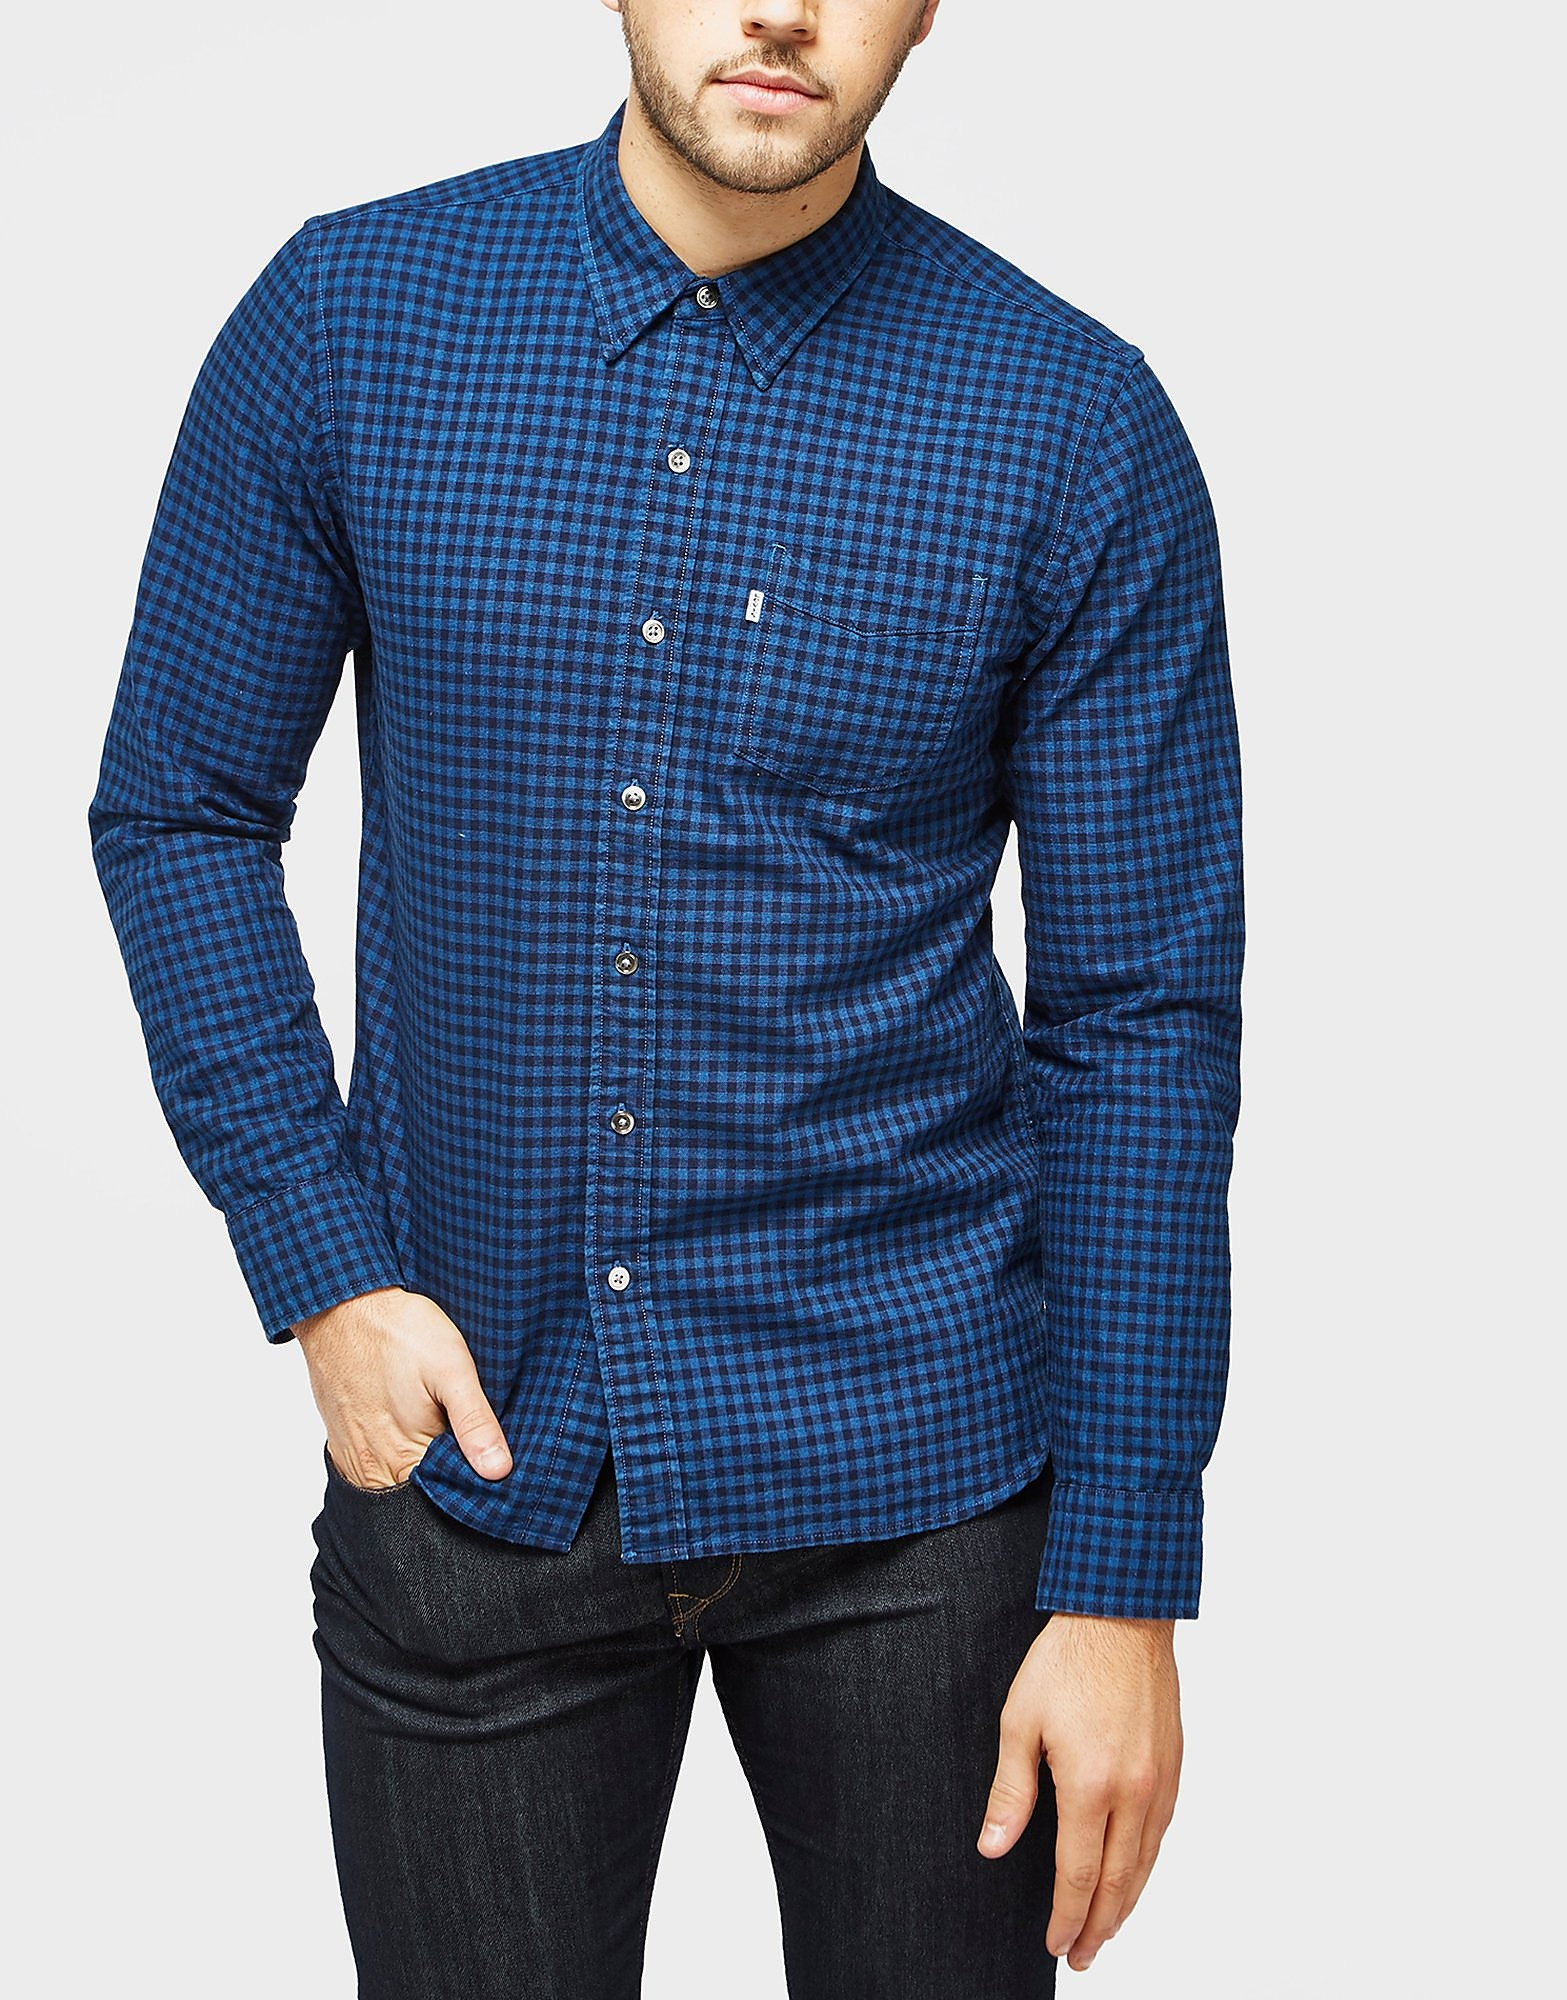 Levis Sunset Check Shirt